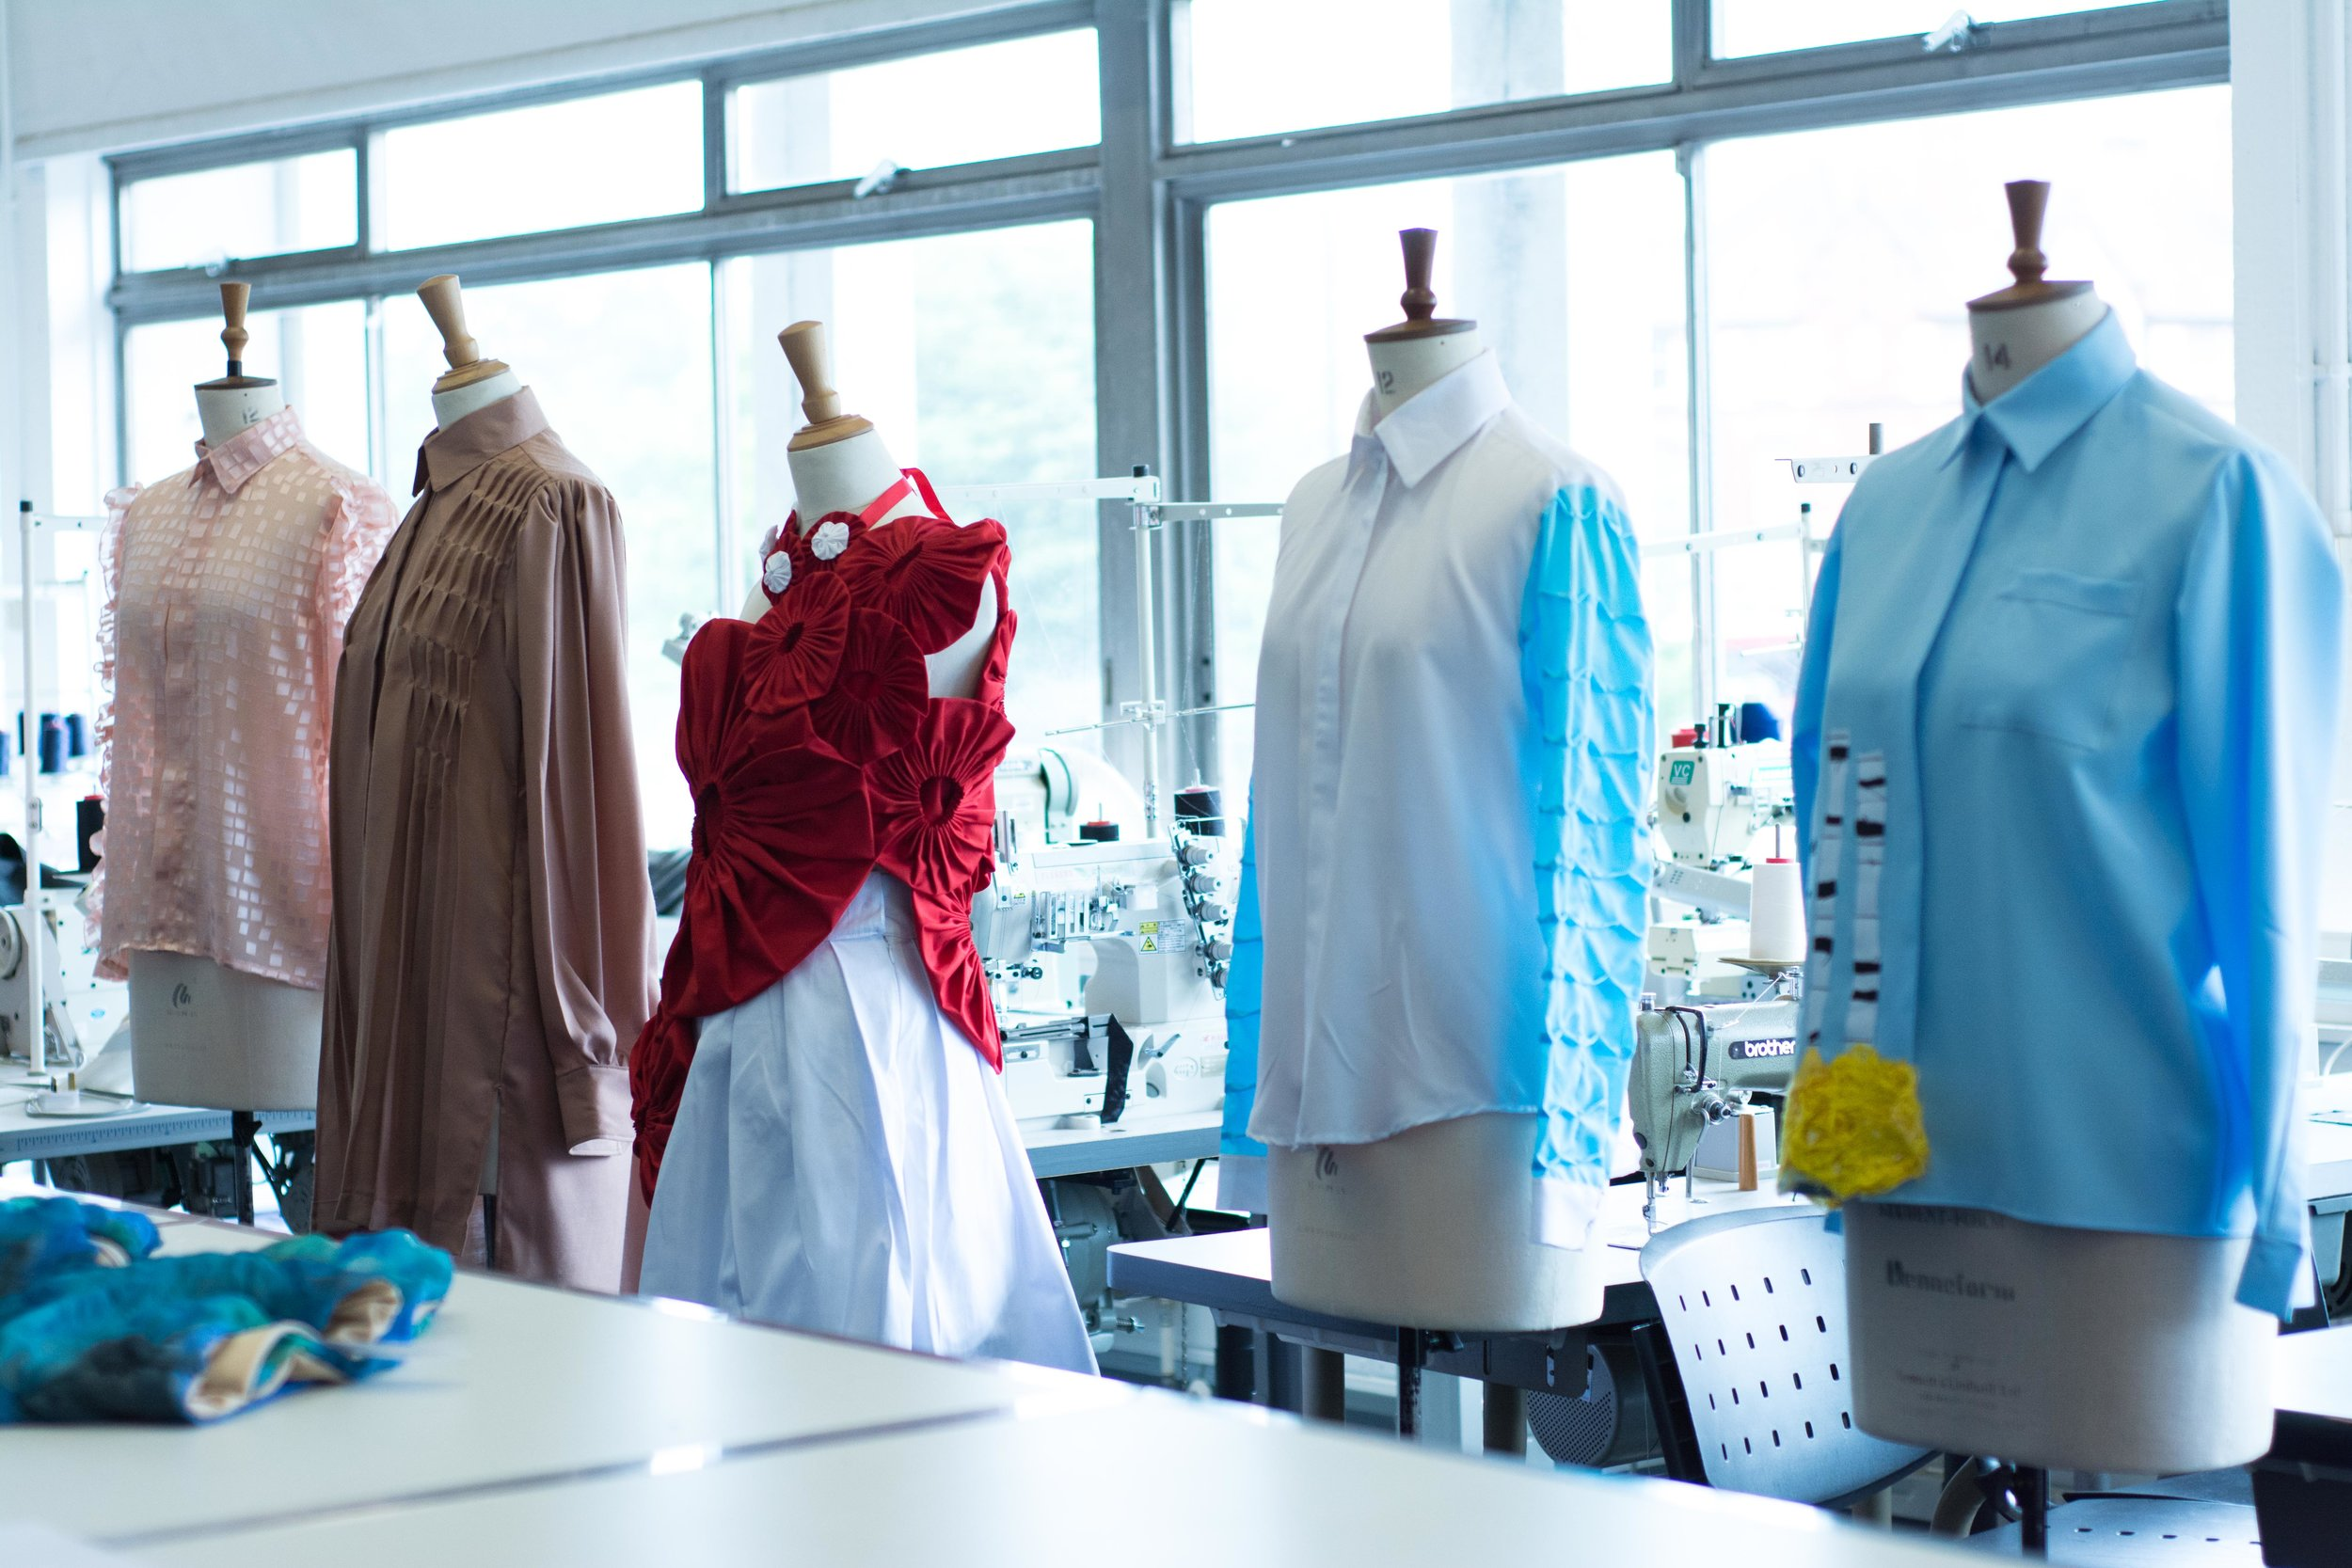 Garments on display in the Fashion & Textiles department, University of Wolverhampton